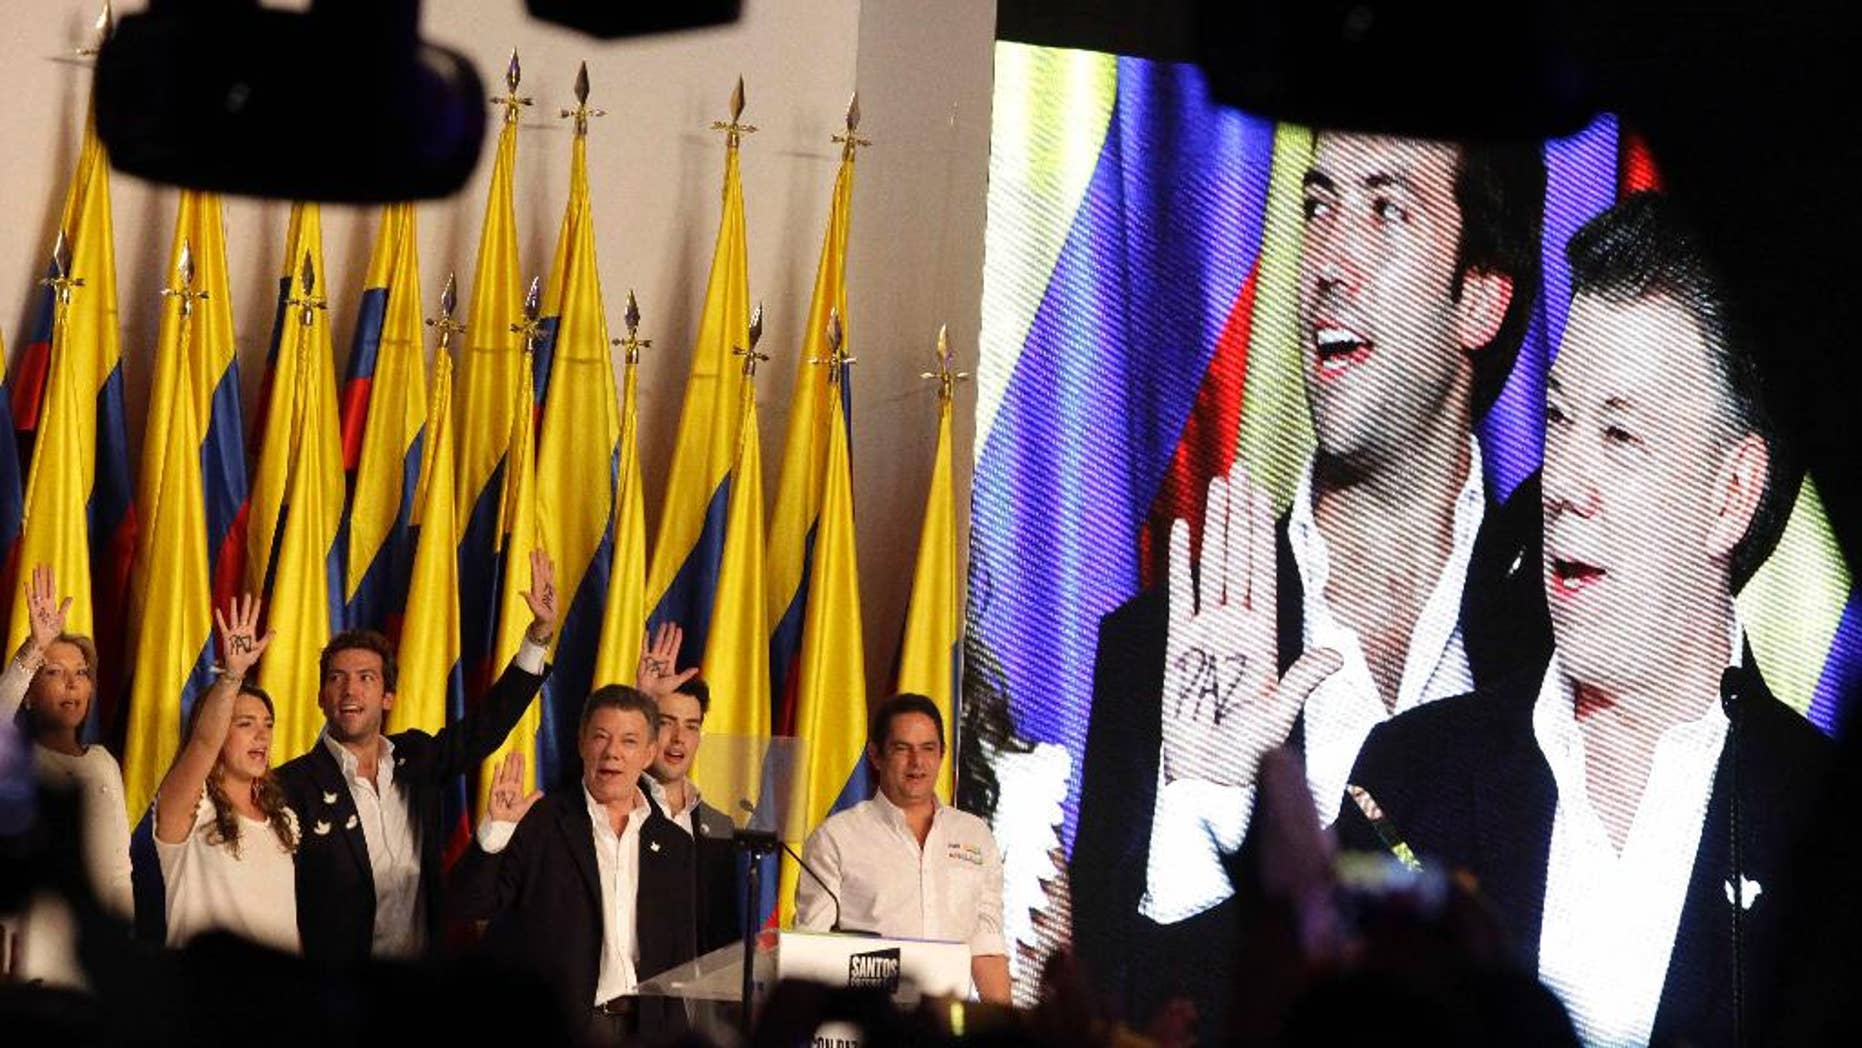 President Juan Manuel Santos, on screen at far right, celebrates winning the presidential runoff election, surrounded by his family at his campaign headquarters in Bogota, Colombia, Sunday, June 15, 2014. Behind Santos on the screen is his son Martin Santos. Santos defeated challenger Oscar Ivan Zuluaga, of the Democratic Center, and won a second four-year term. (AP Photo/Javier Galeano)